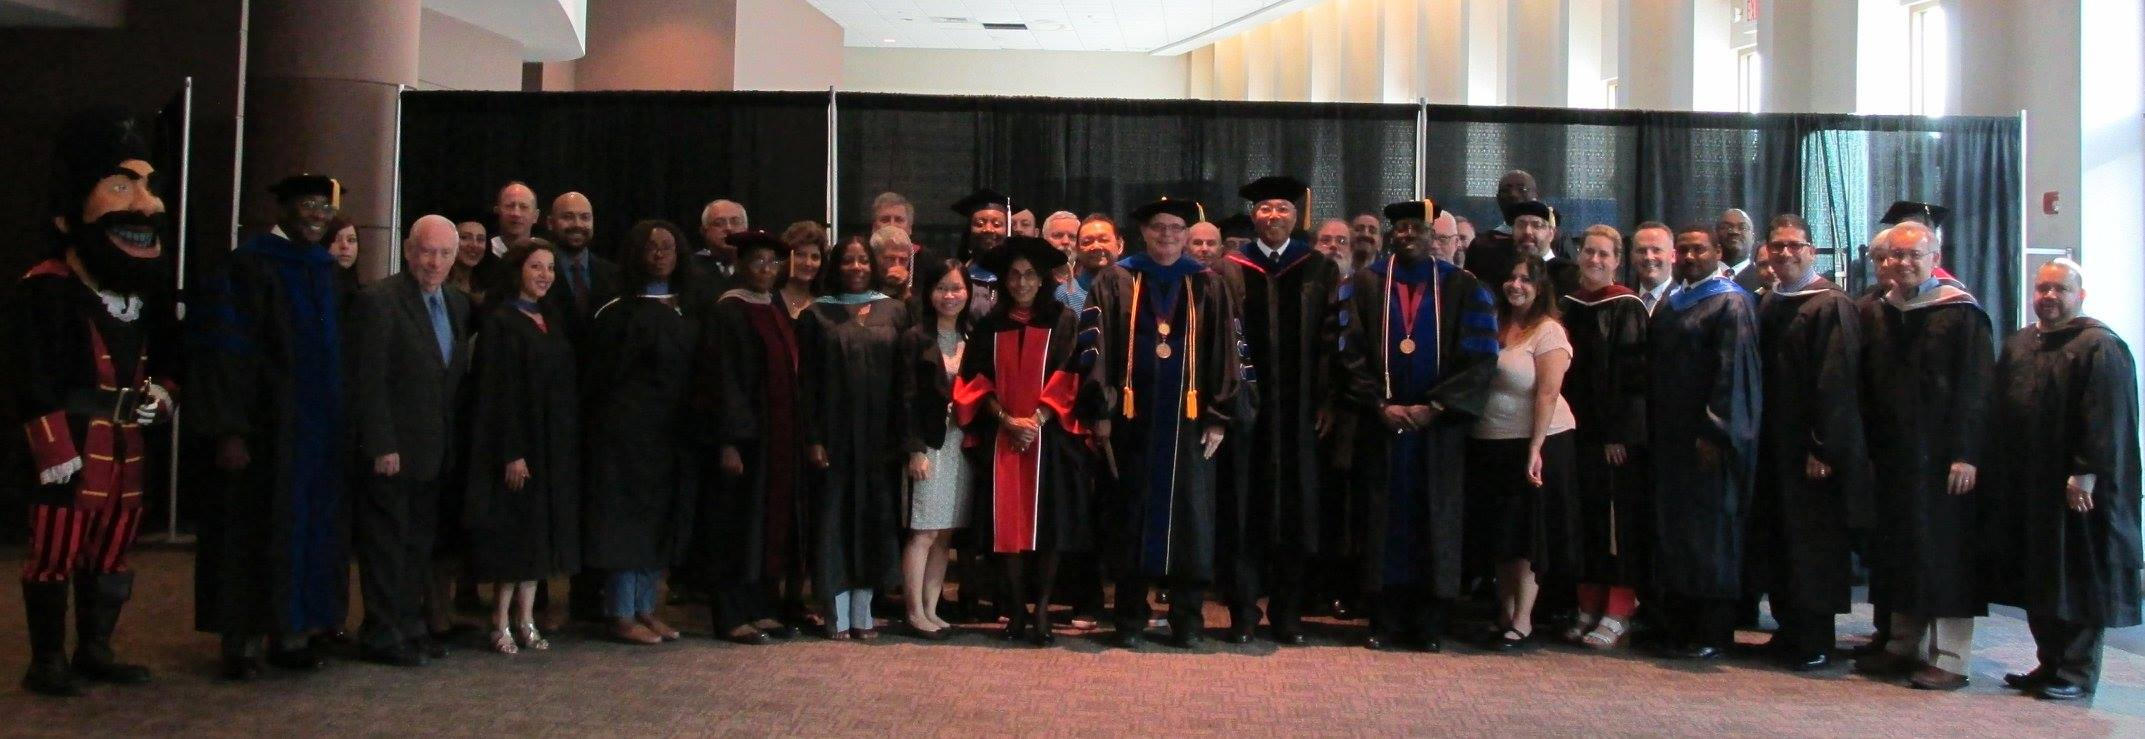 Park University Commencement Exercises – El Paso, TX